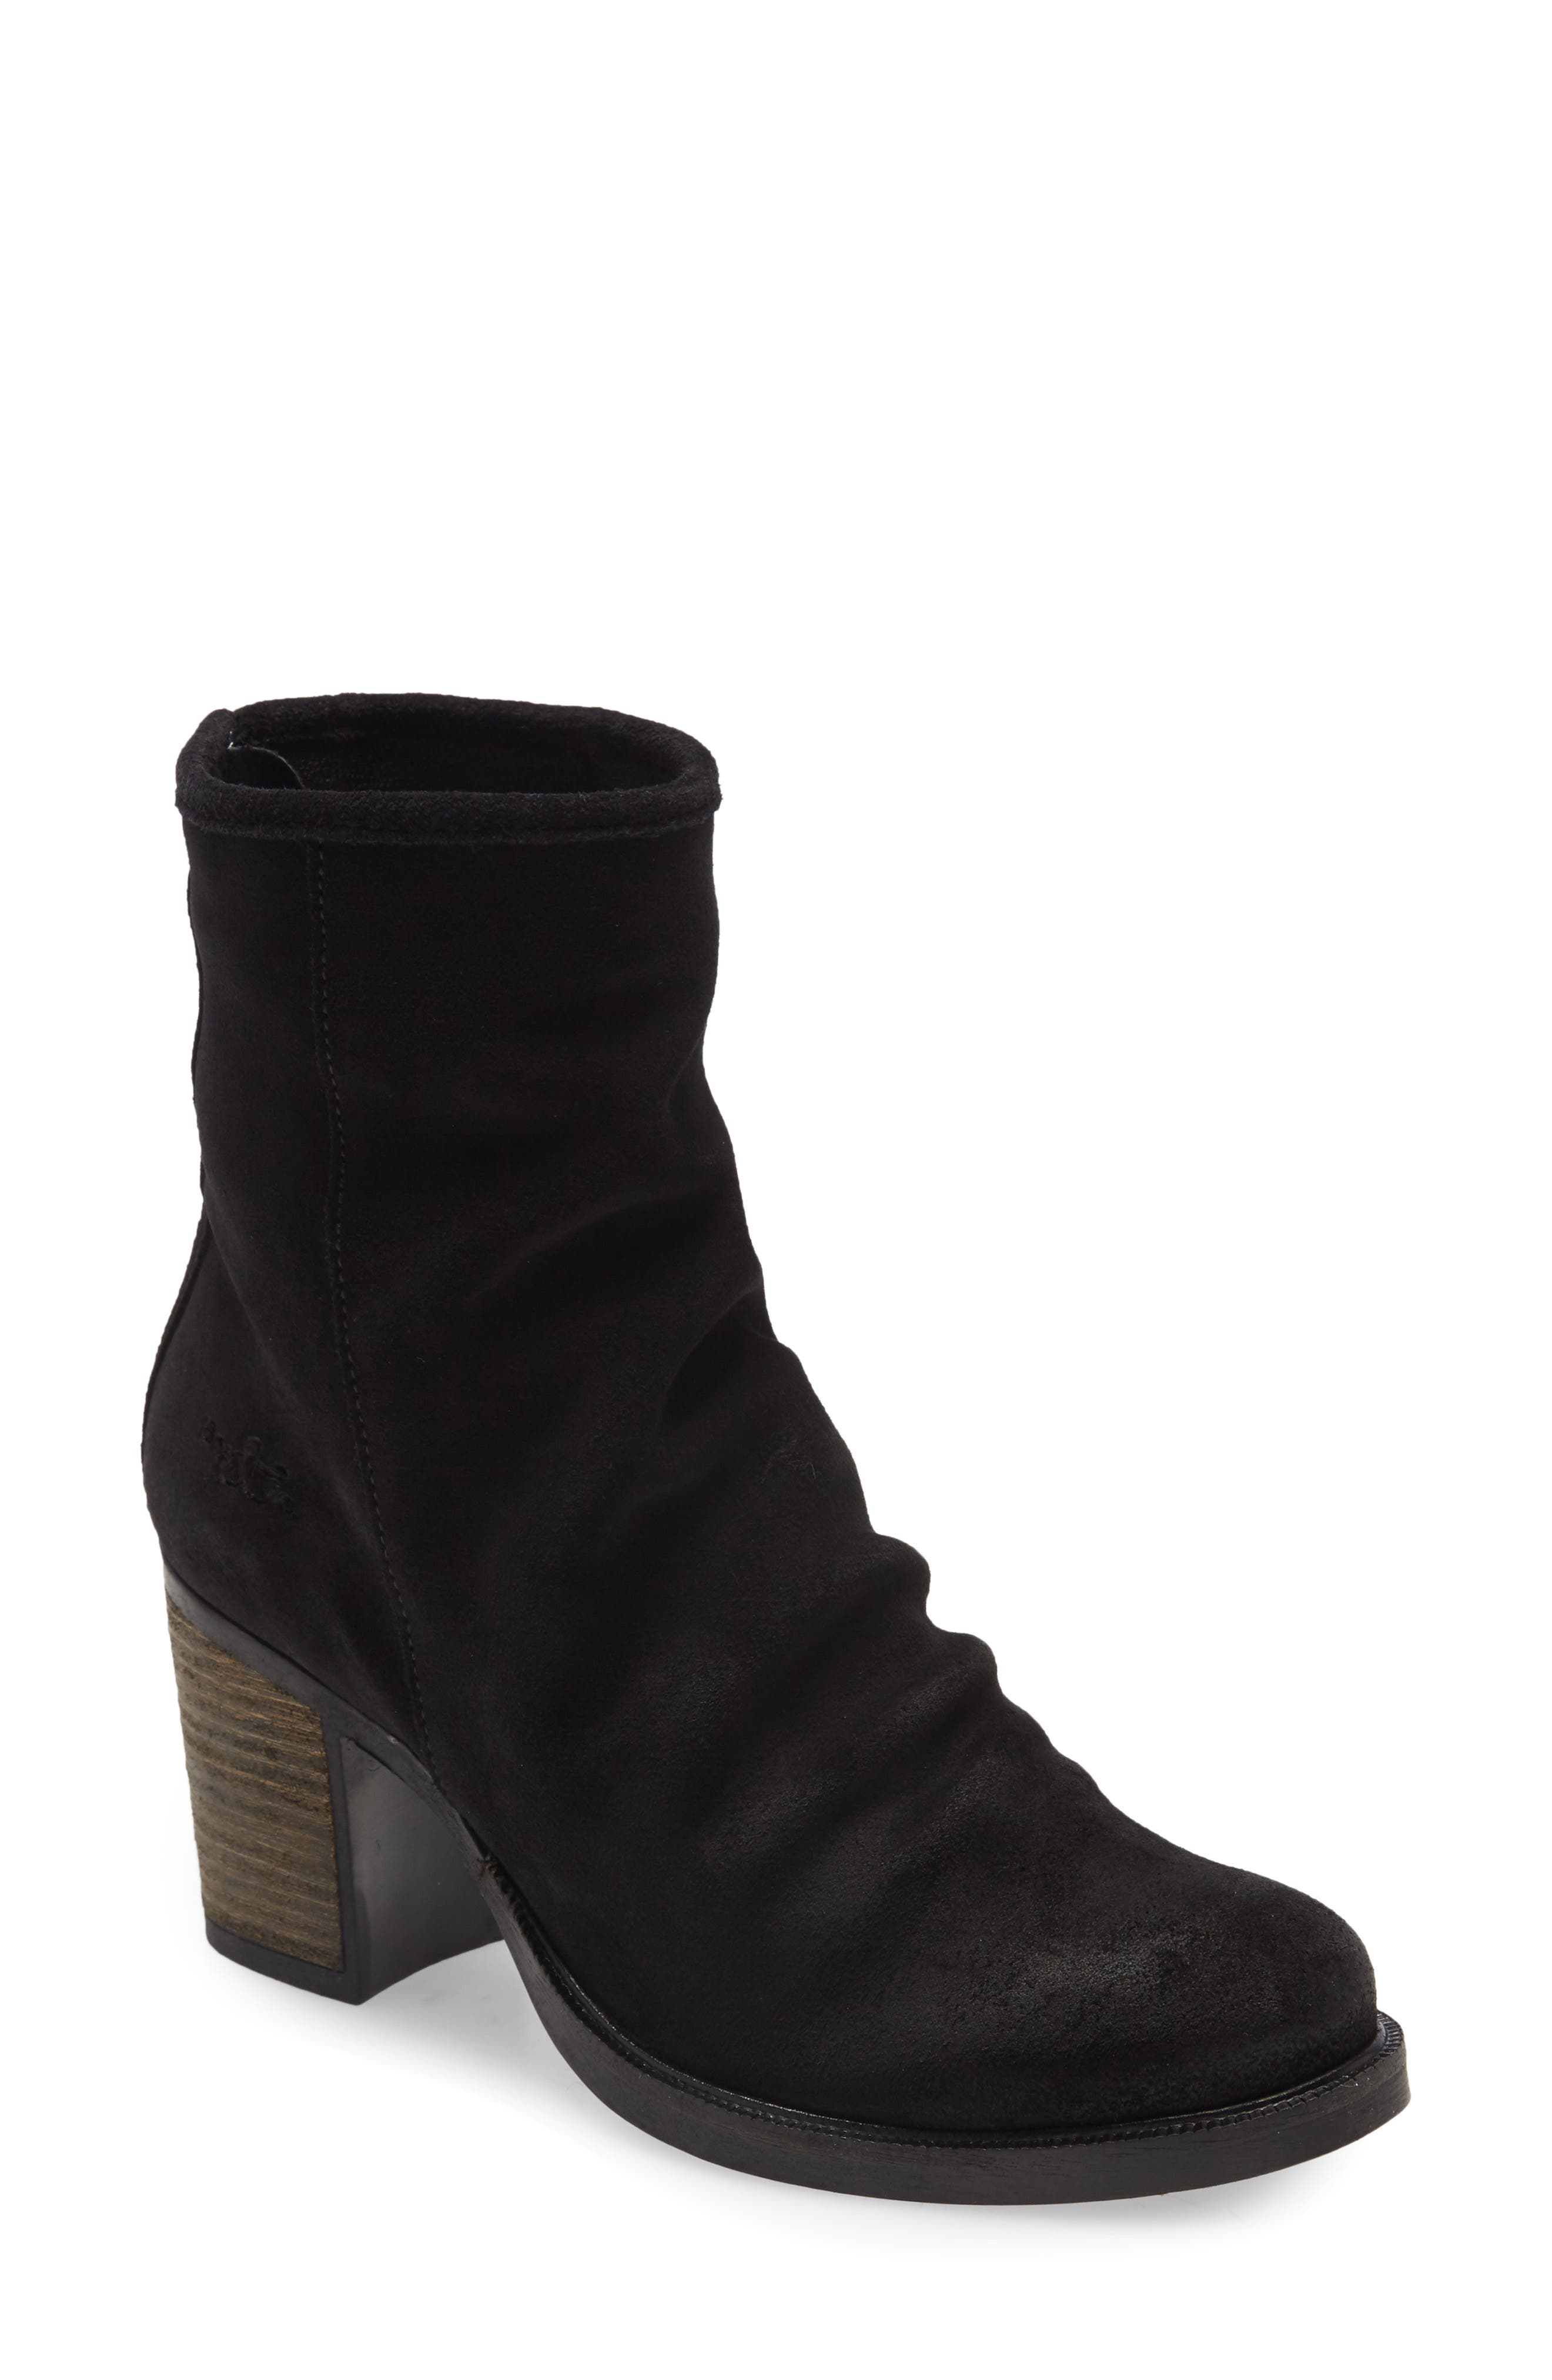 Soft ruching at the vamp creates a slouchy silhouette on a waterproof bootie lifted by a chunky stacked heel and fitted with a cushy, arch-supporting footbed. Style Name: Bos. & Co. Bevy Block Heel Bootie (Women). Style Number: 6086157. Available in stores.